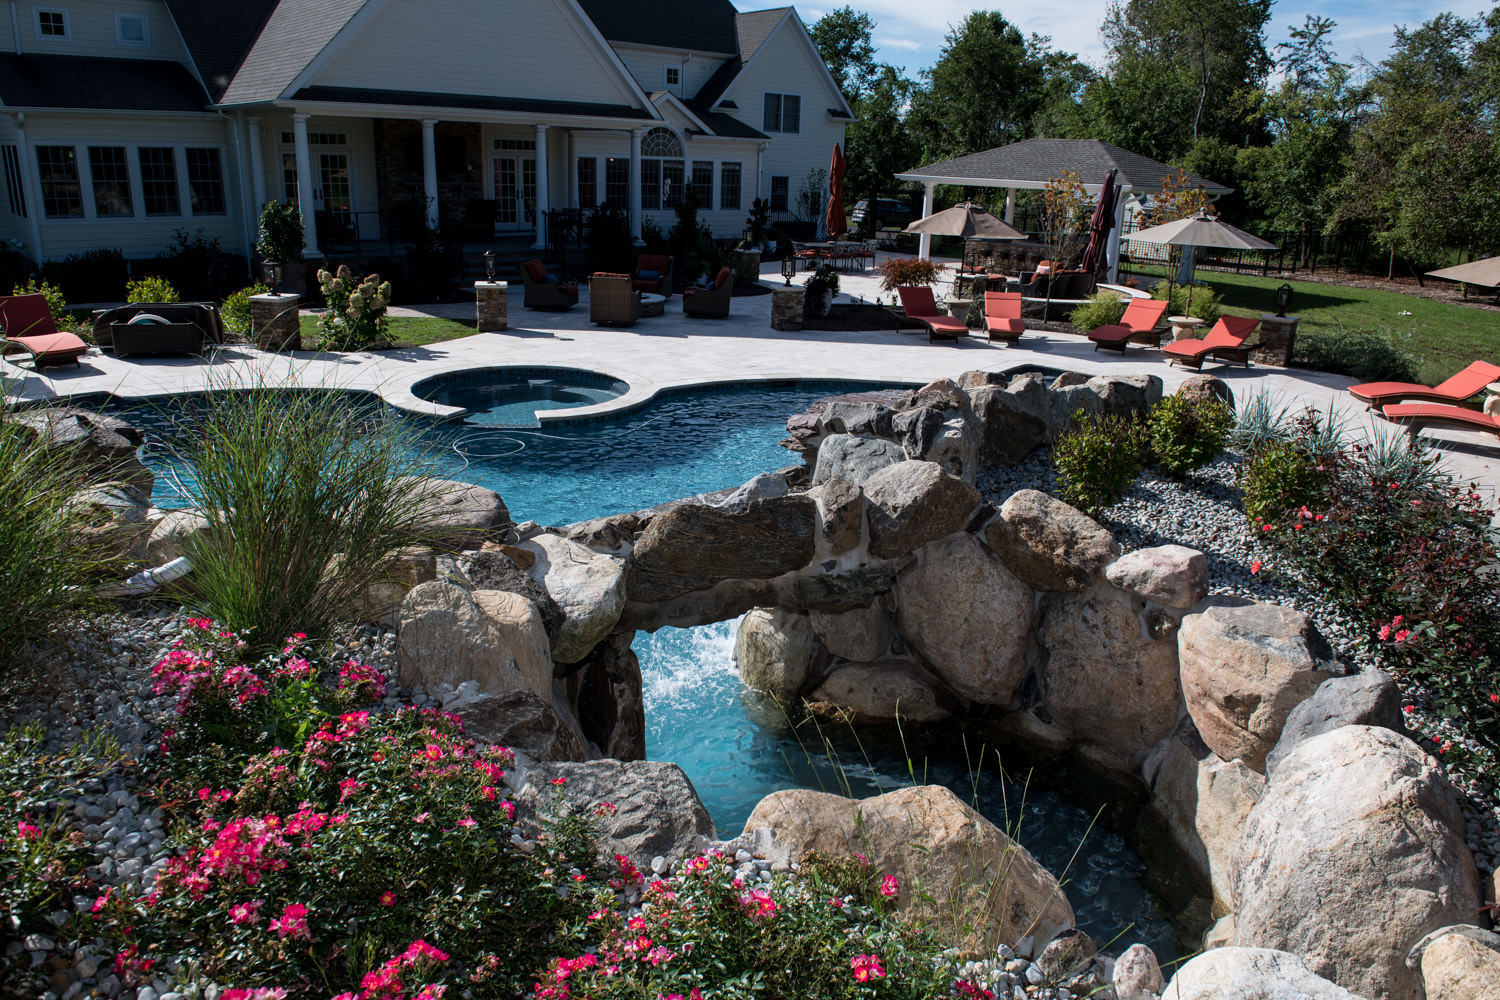 14-Custom-Pool-Design-Pennington-NJ-K-and-C-Land-Design.jpg